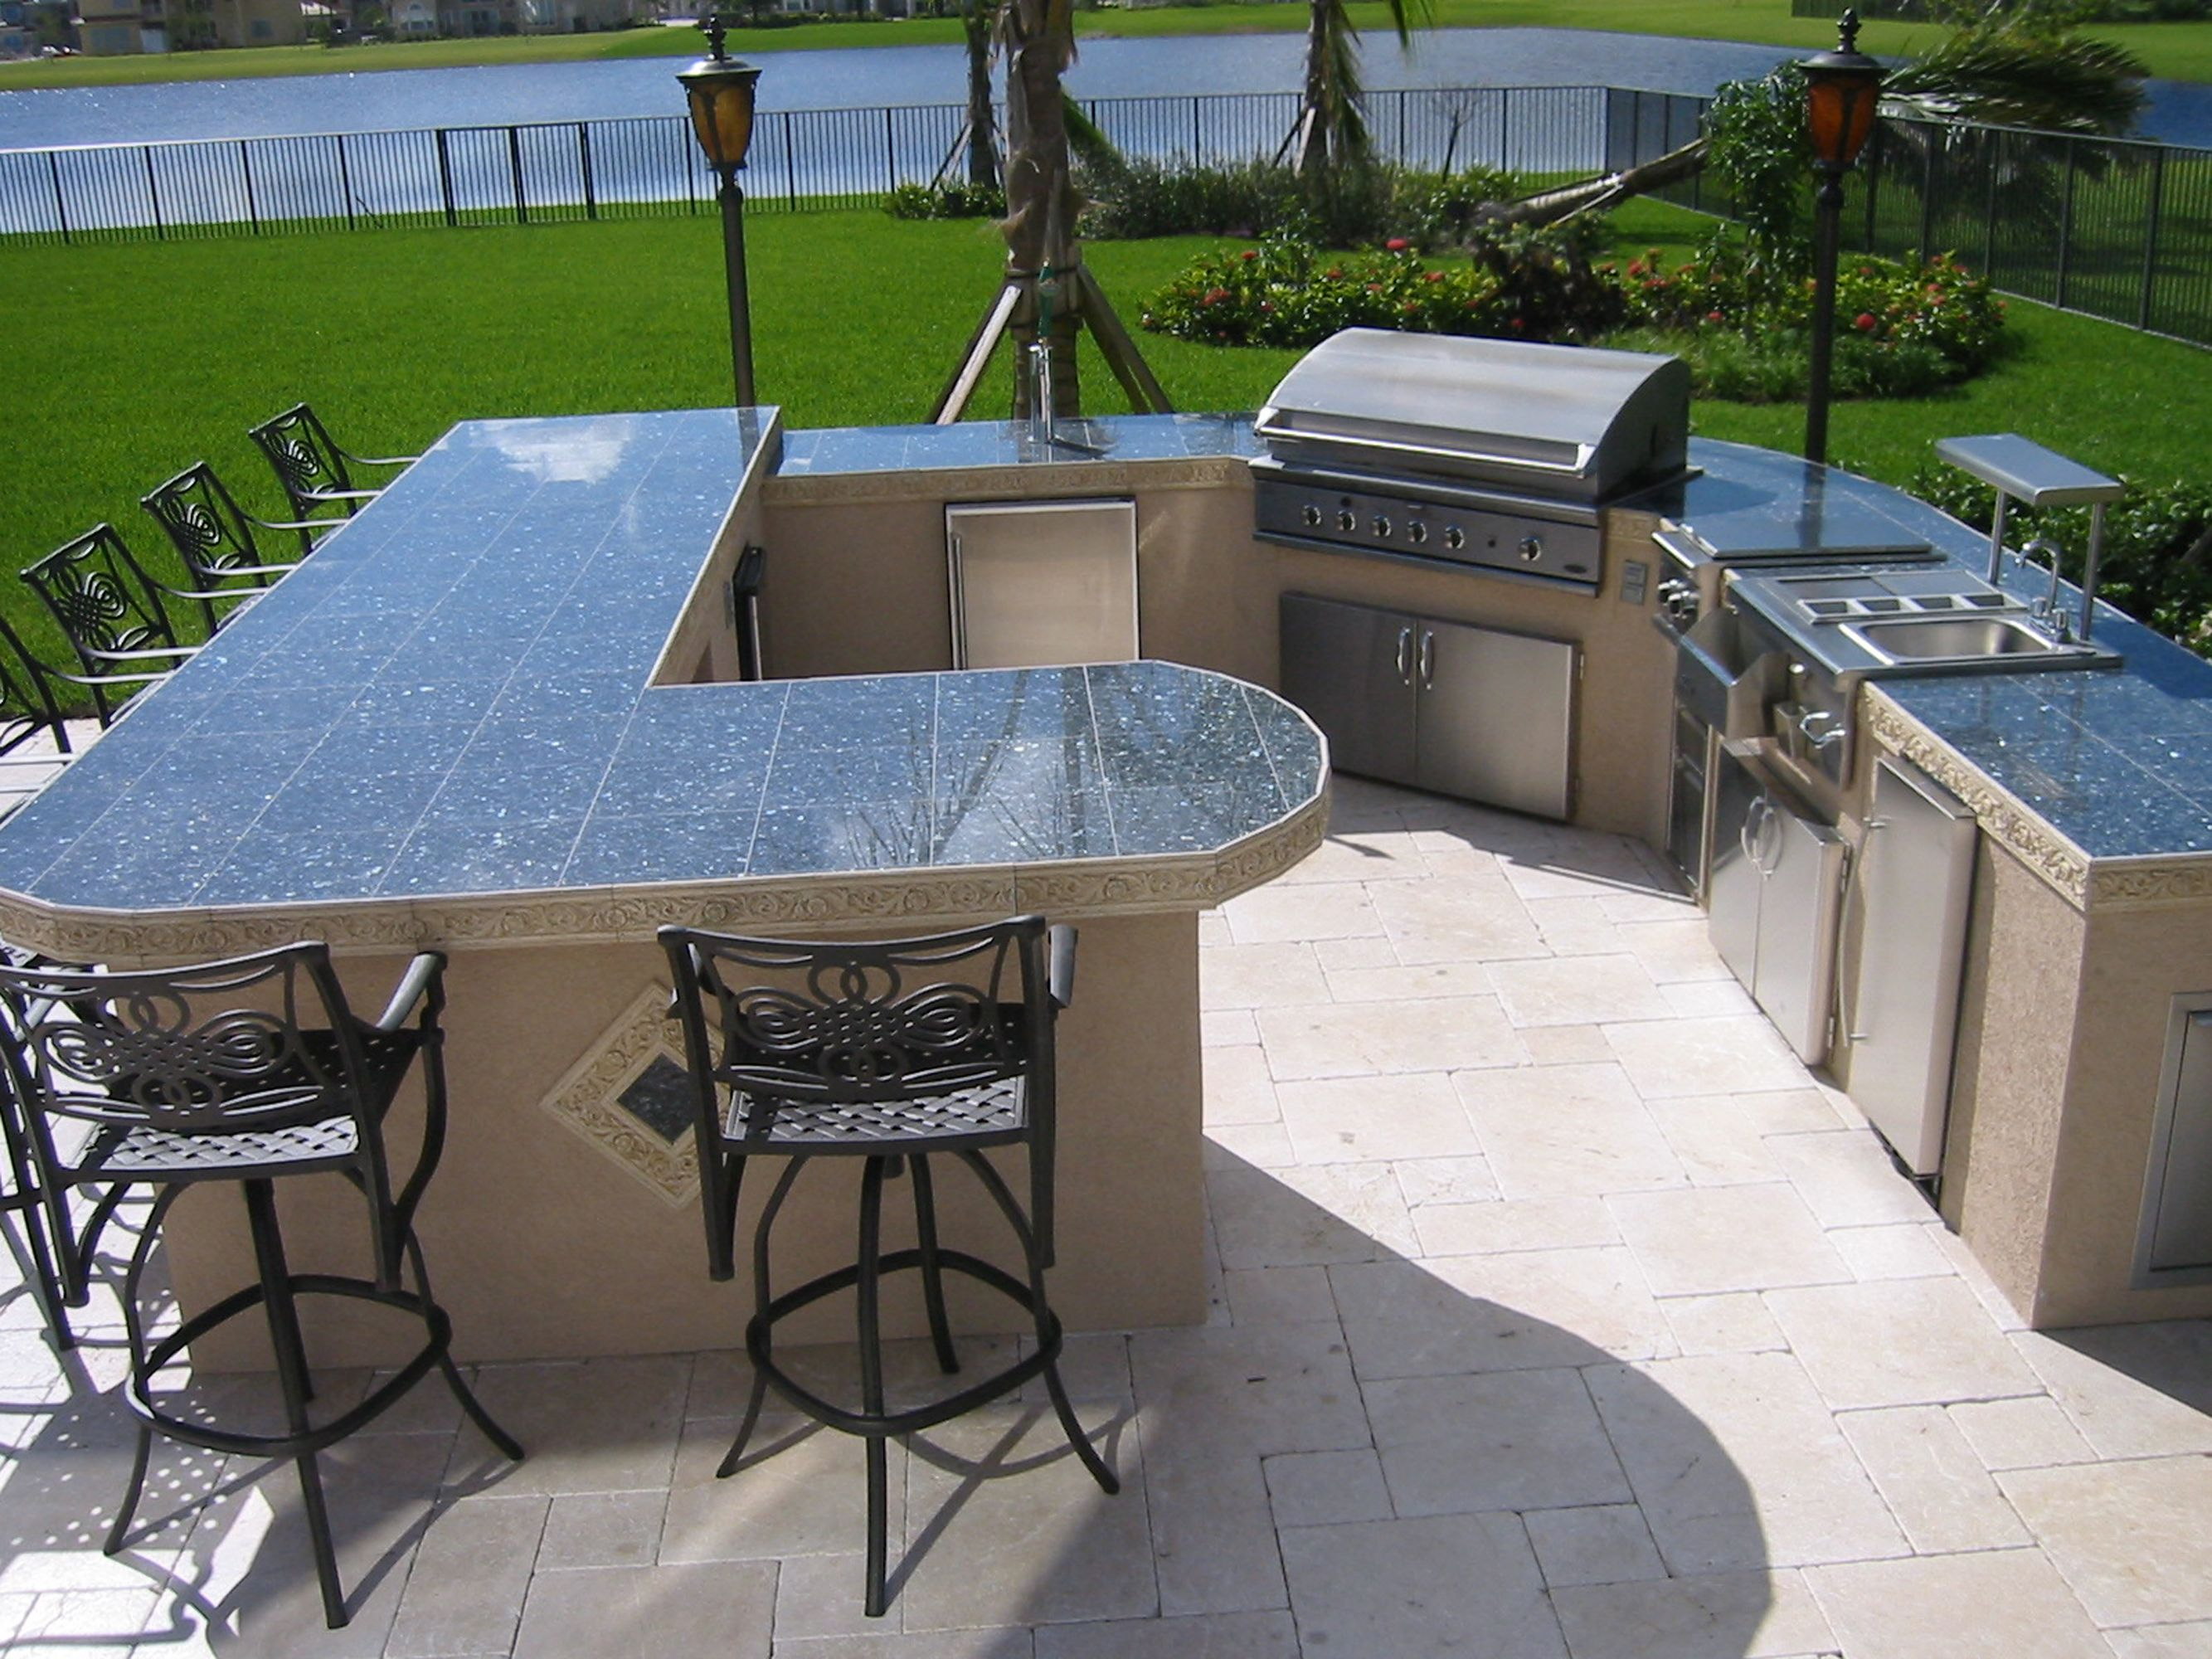 Outdoor kitchen design images backyard bar bar plans for Outdoor kitchen bar plans